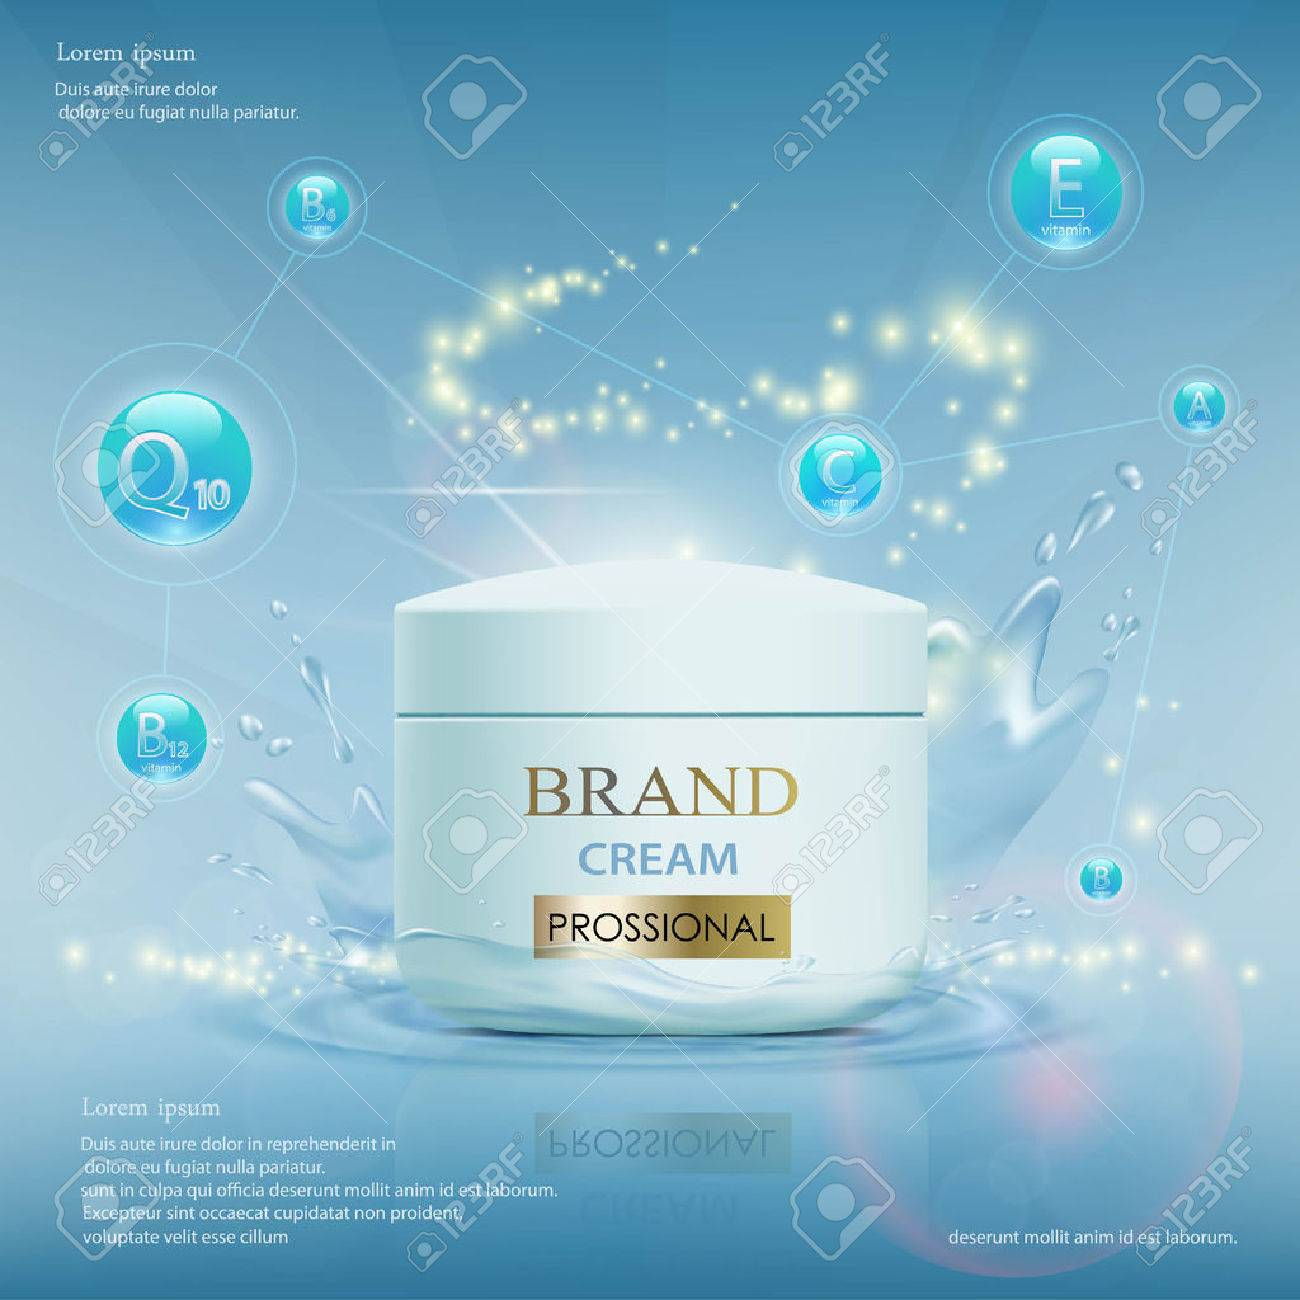 Cream with vitamins, serum and coenzyme Q10. Cosmetic ads template. Stock vector illustration. - 70686752